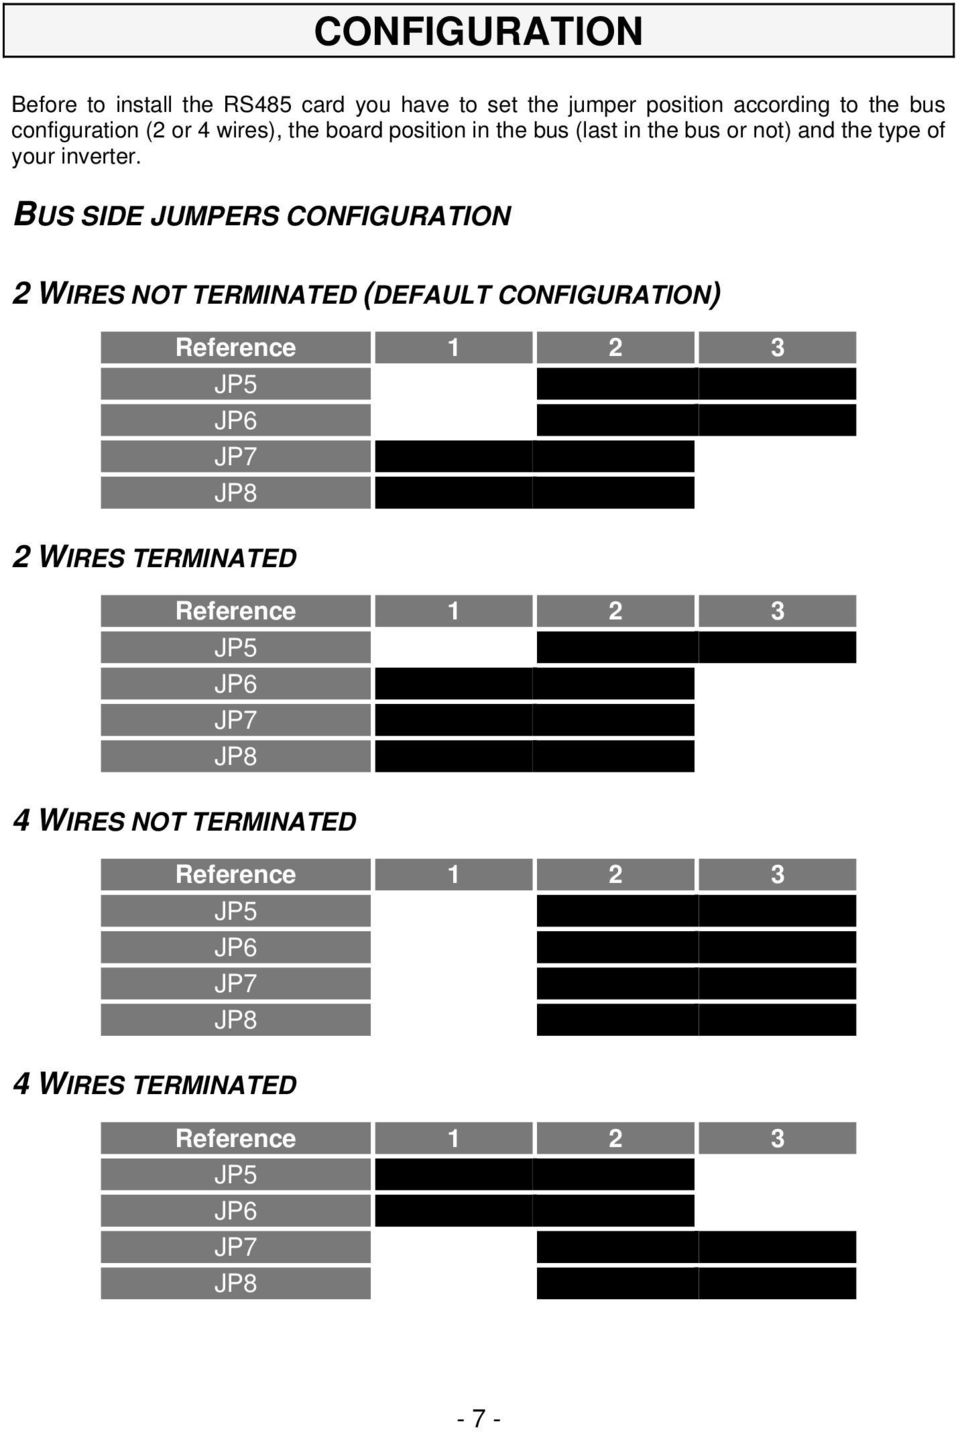 BUS SIDE JUMPERS CONFIGURATION 2 WIRES NOT TERMINATED (DEFAULT CONFIGURATION) 2 WIRES TERMINATED Reference 1 2 3 JP5 JP6